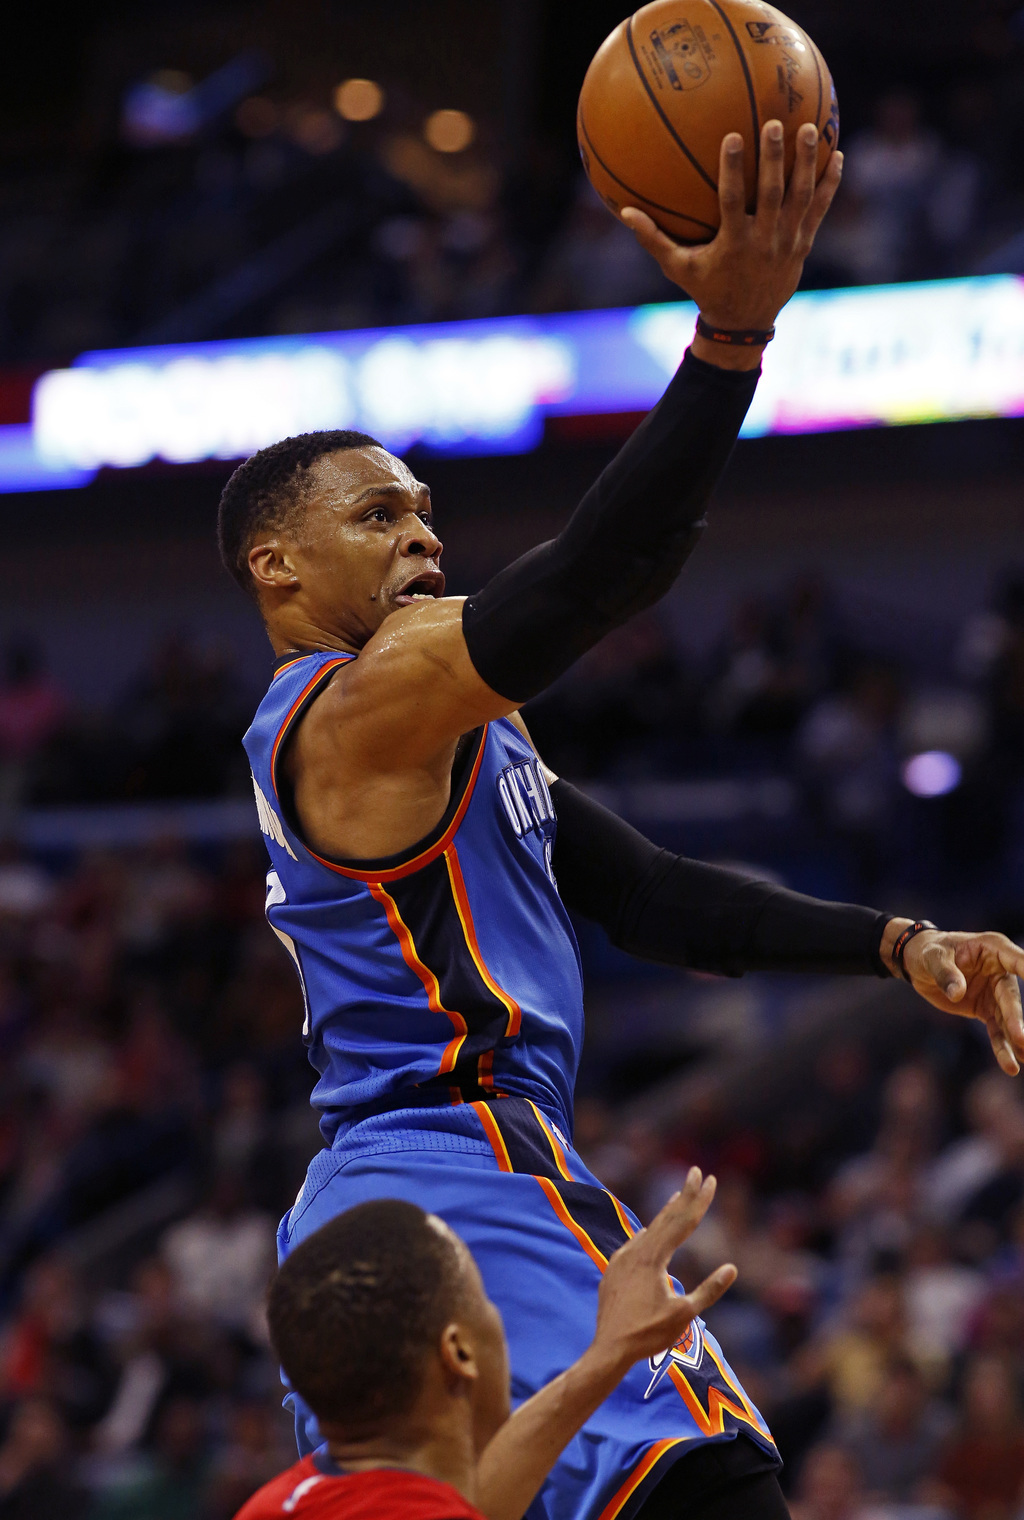 Oklahoma City Thunder guard Russell Westbrook, top, makes a layup against New Orleans Pelicans guard Tim Frazier, bottom, during the fi...